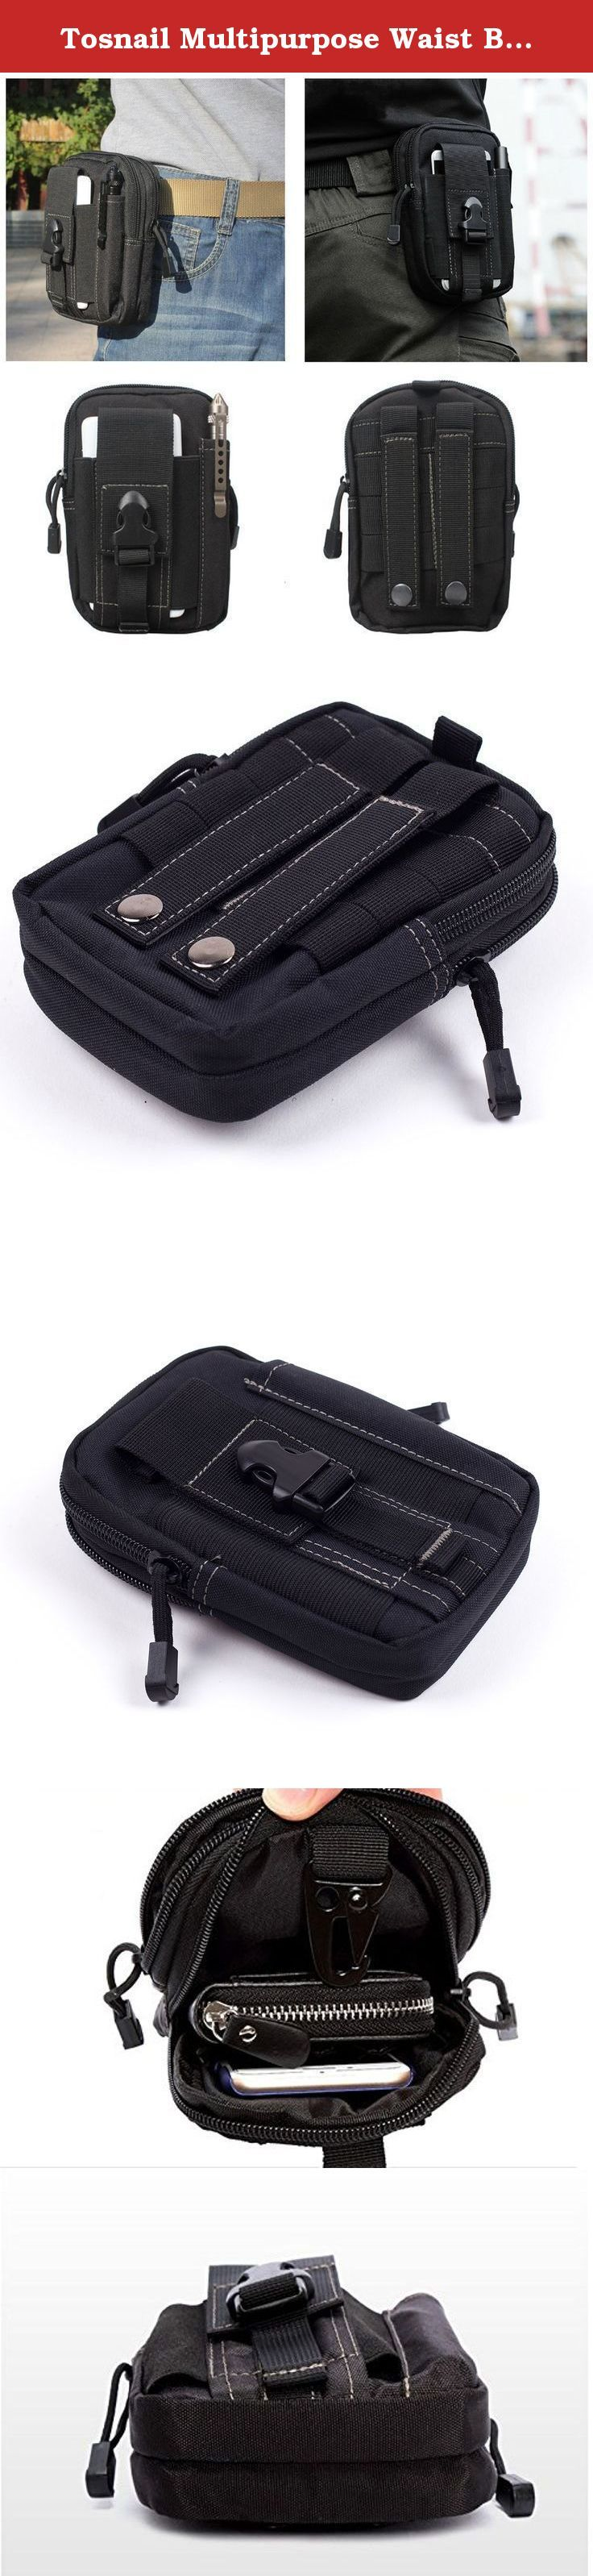 Tosnail Multipurpose Waist Bag, Black. small, easy to carry With the help of the elastic band, can be hanged around the neck, or fixed in the arms or legs multiple purpose Nylon material, waterproof and durable.